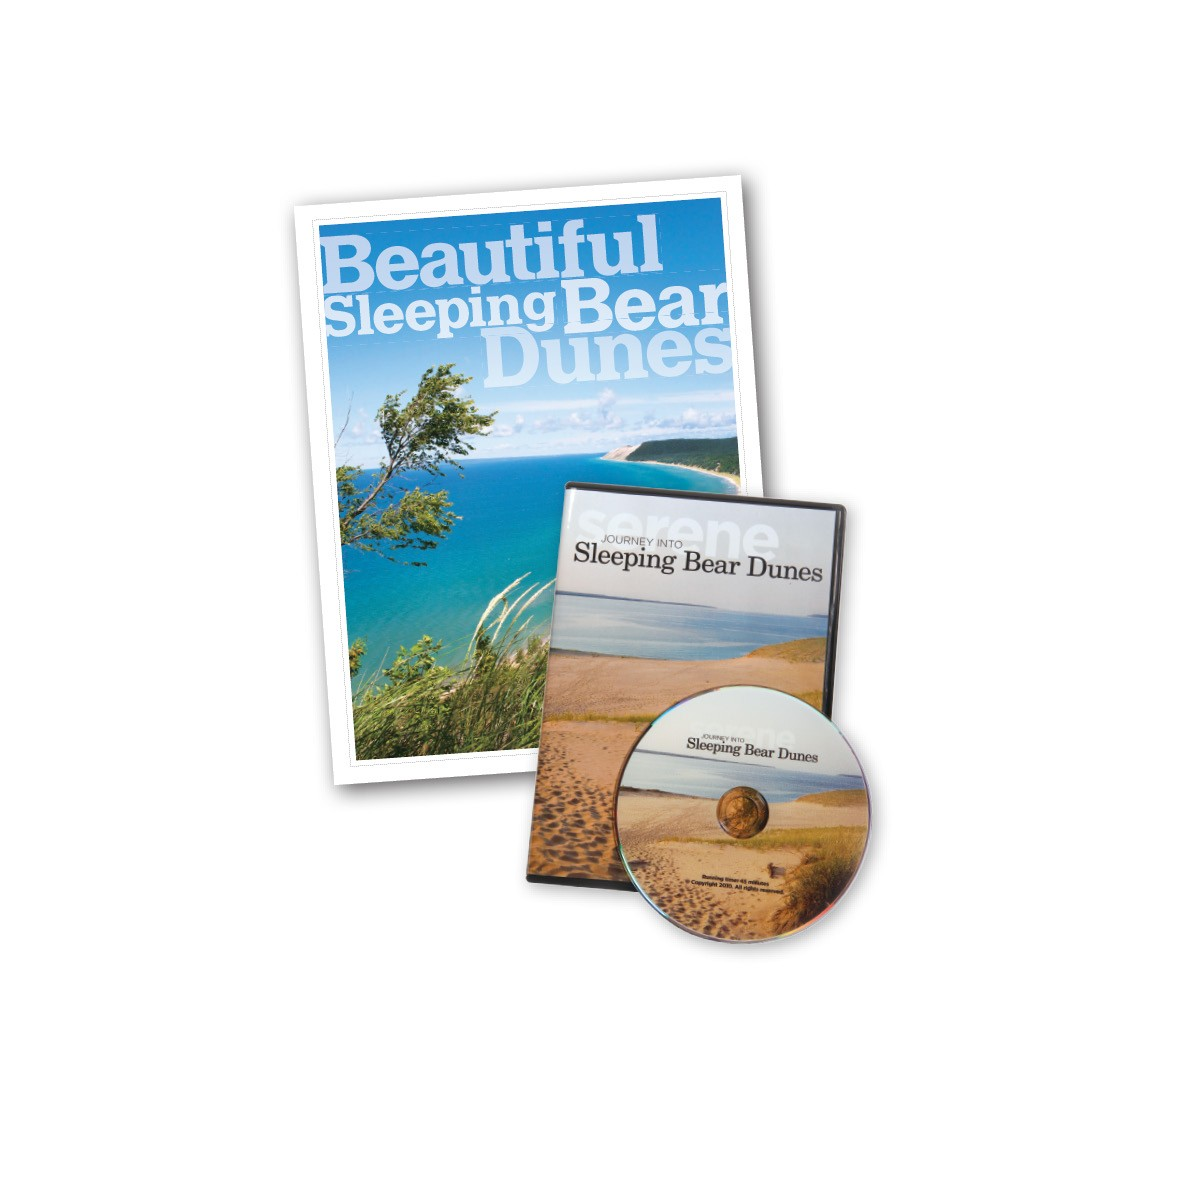 Beautiful Sleeping Bear Dunes Book + Journey into Sleeping Bear Dunes DVD